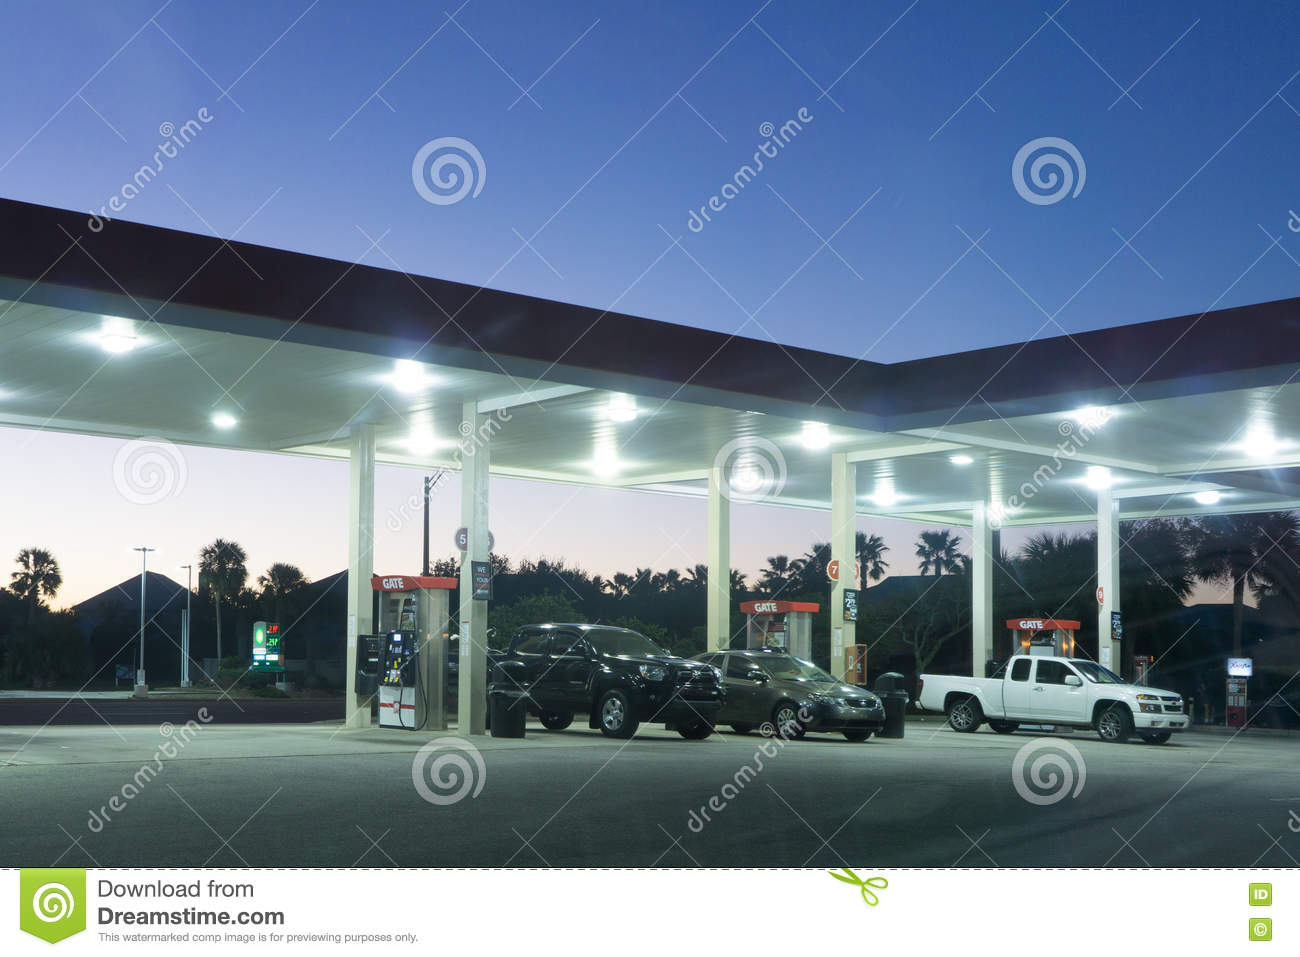 Gate Gas Station Editorial Stock Image - Image: 79342954